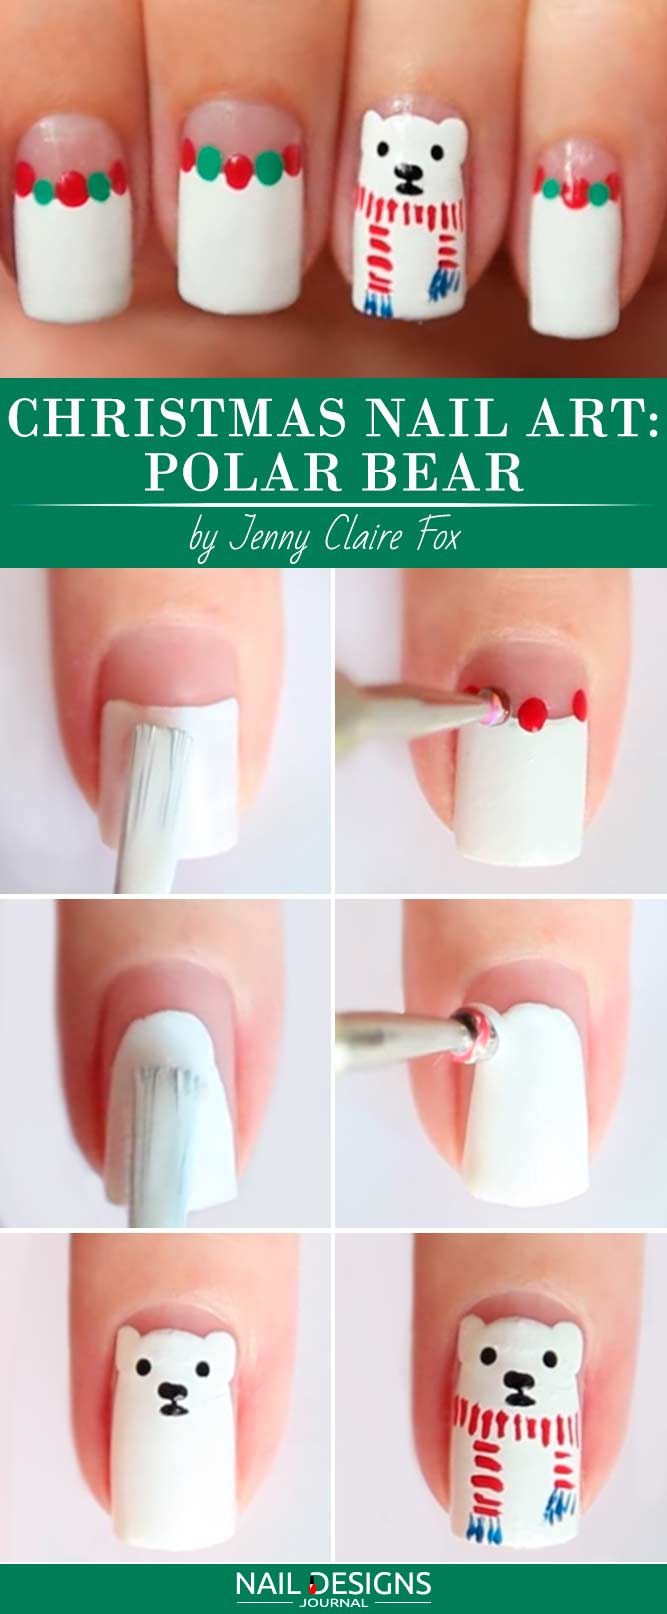 Christmas Nail Art Polar Bear